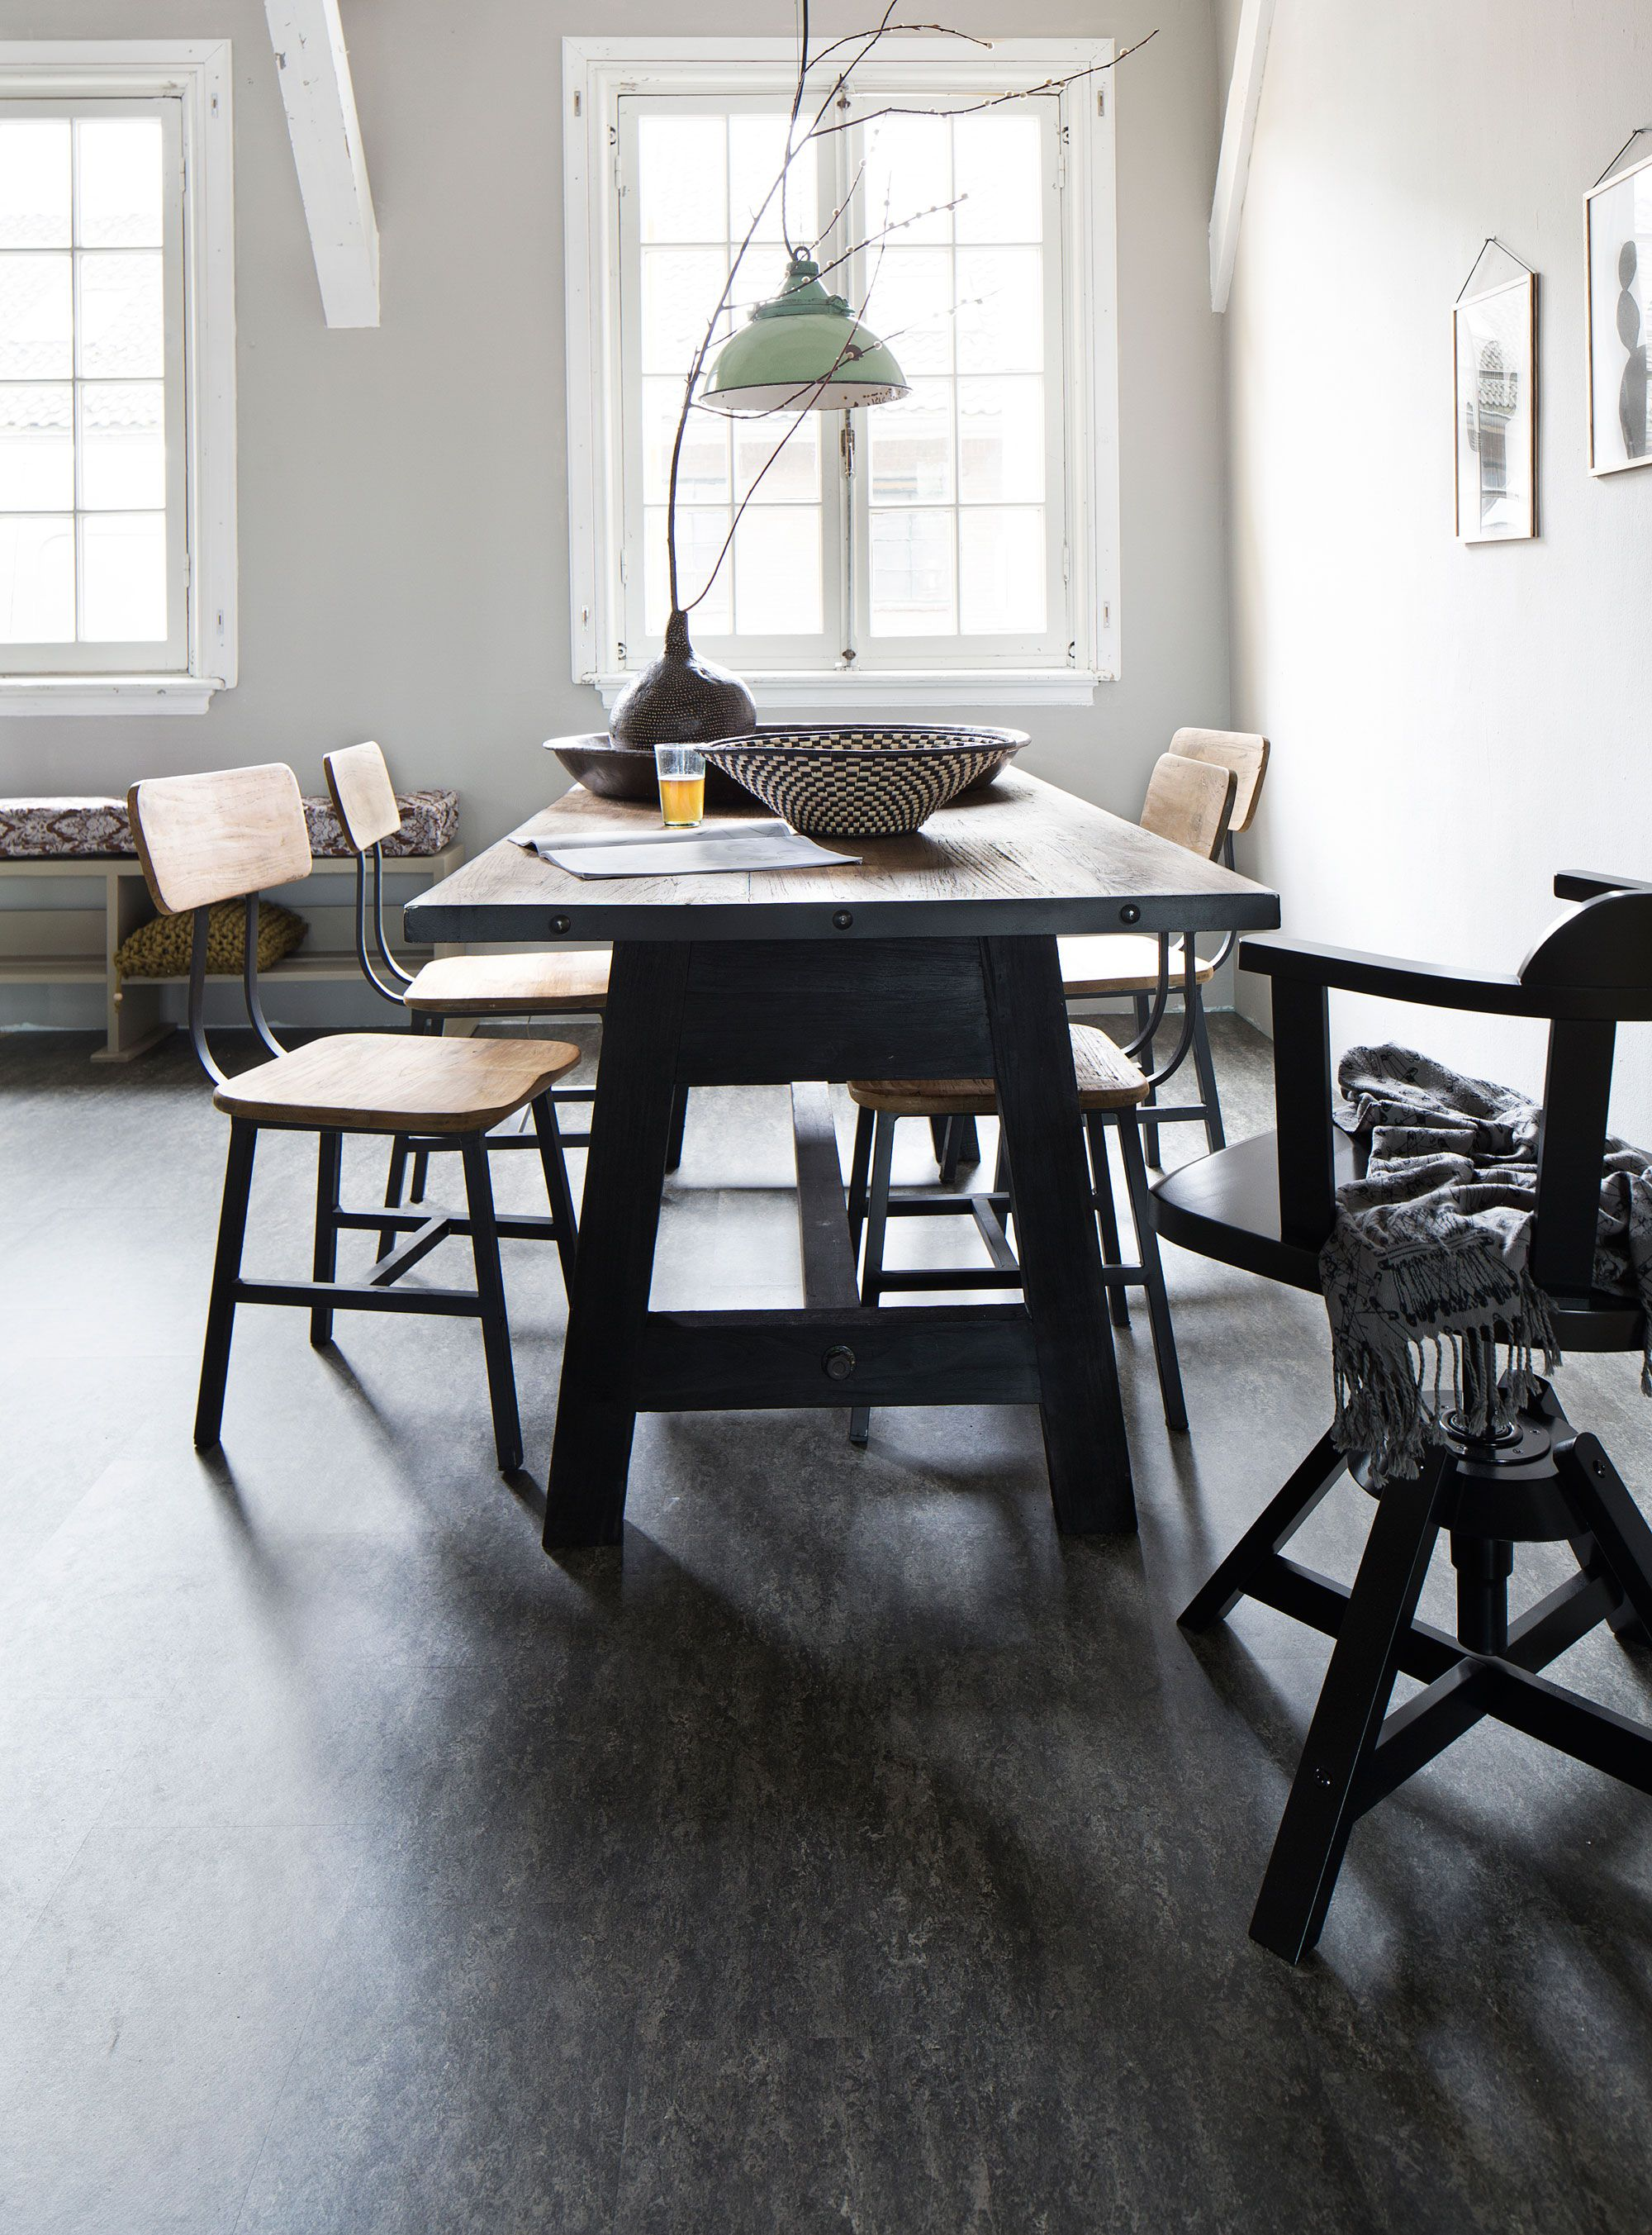 Dark marmoleum floor with wooden dining table and chairs for Diseno comedor industrial